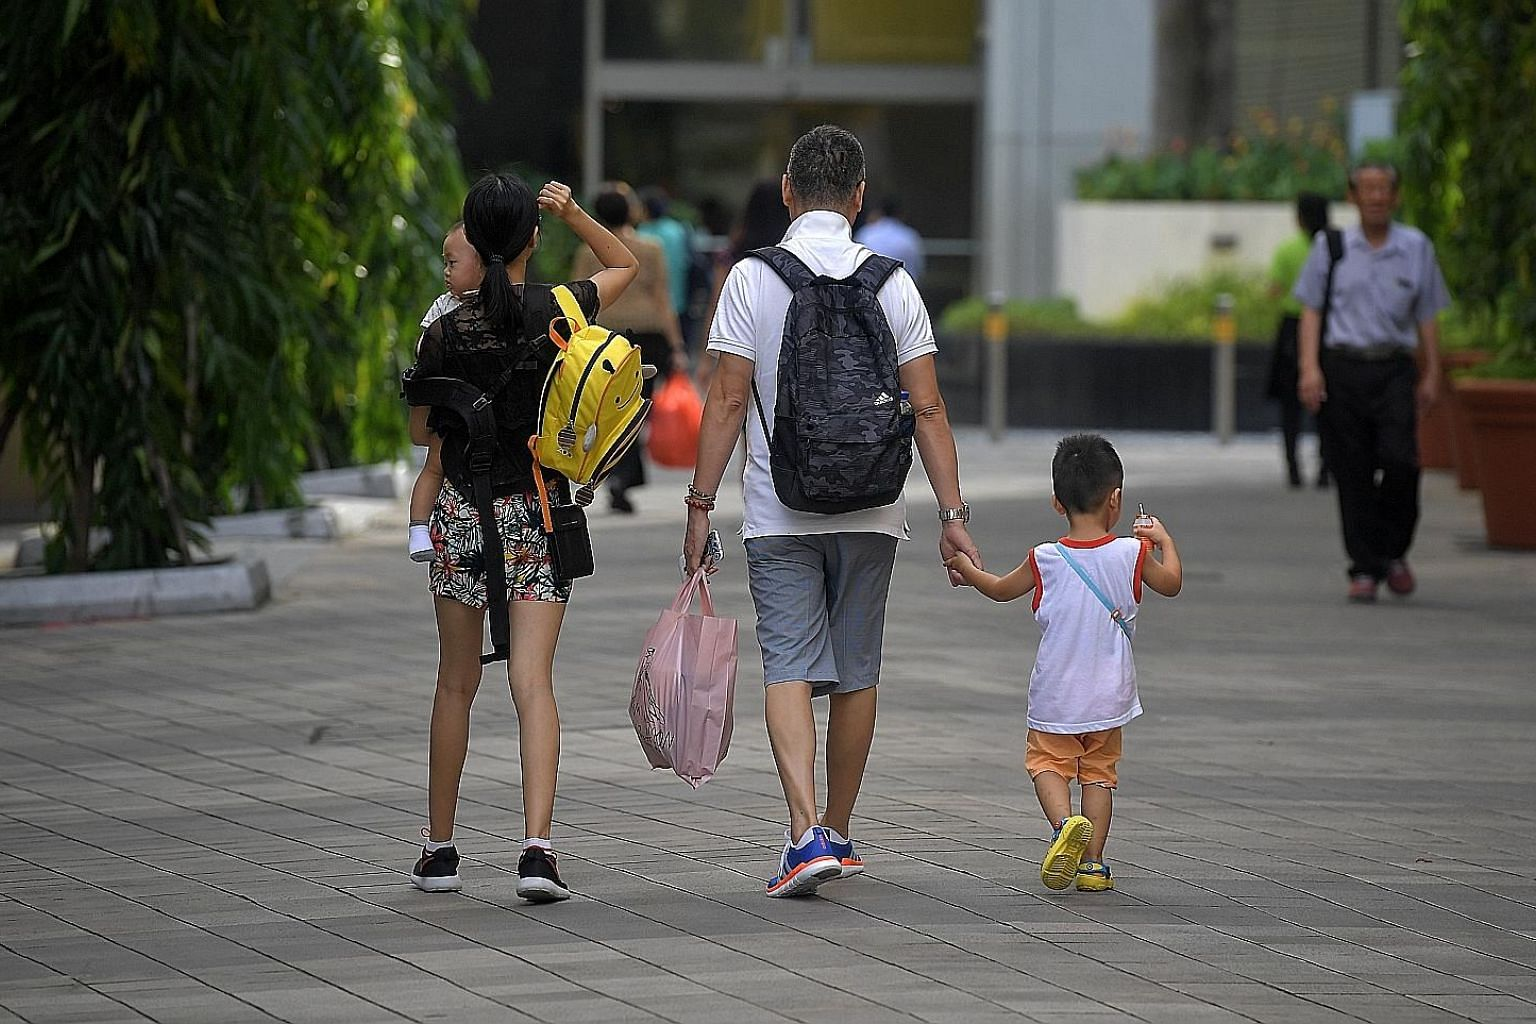 In the 2016 Marriage and Parenthood survey, a majority of married respondents indicated their intention to have two or more children, while only 3 per cent had intentions to remain childless.